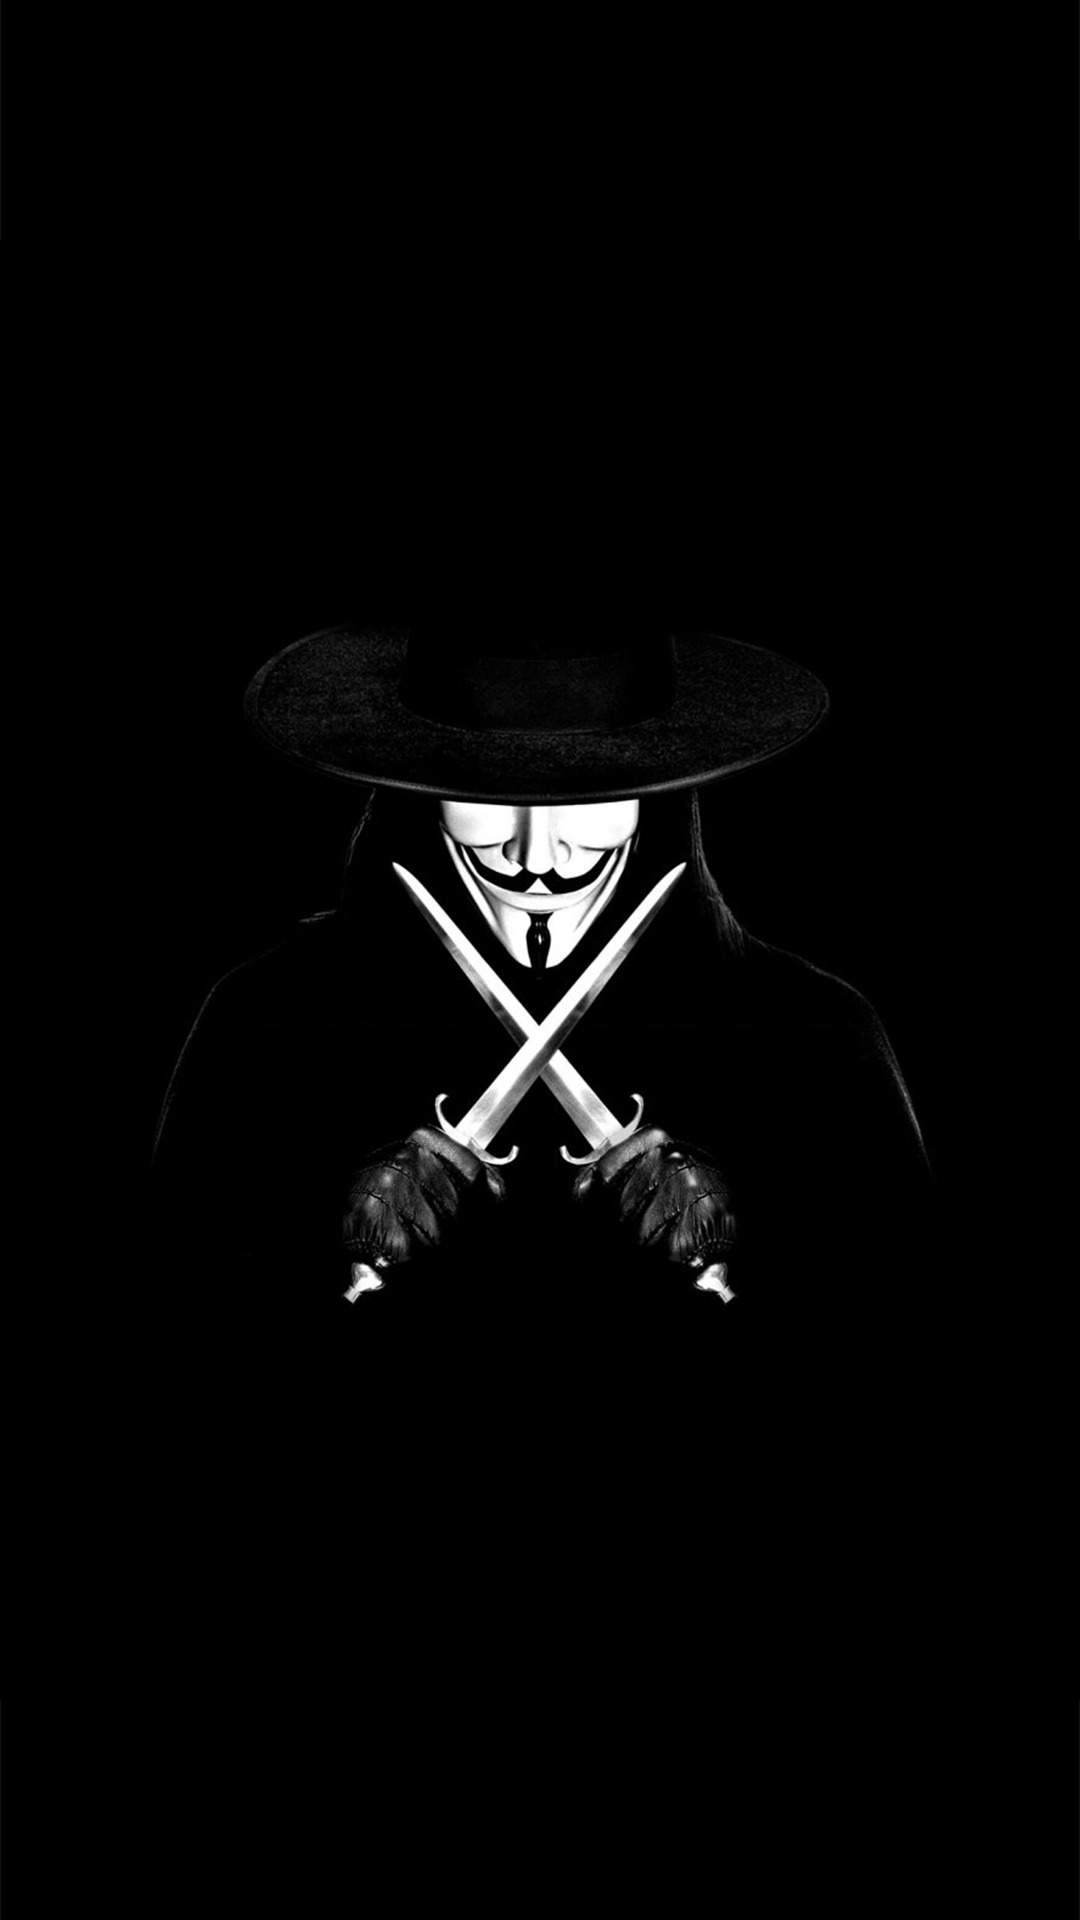 vendetta-anonymous-guy-fawkes-mask-android-wallpaper